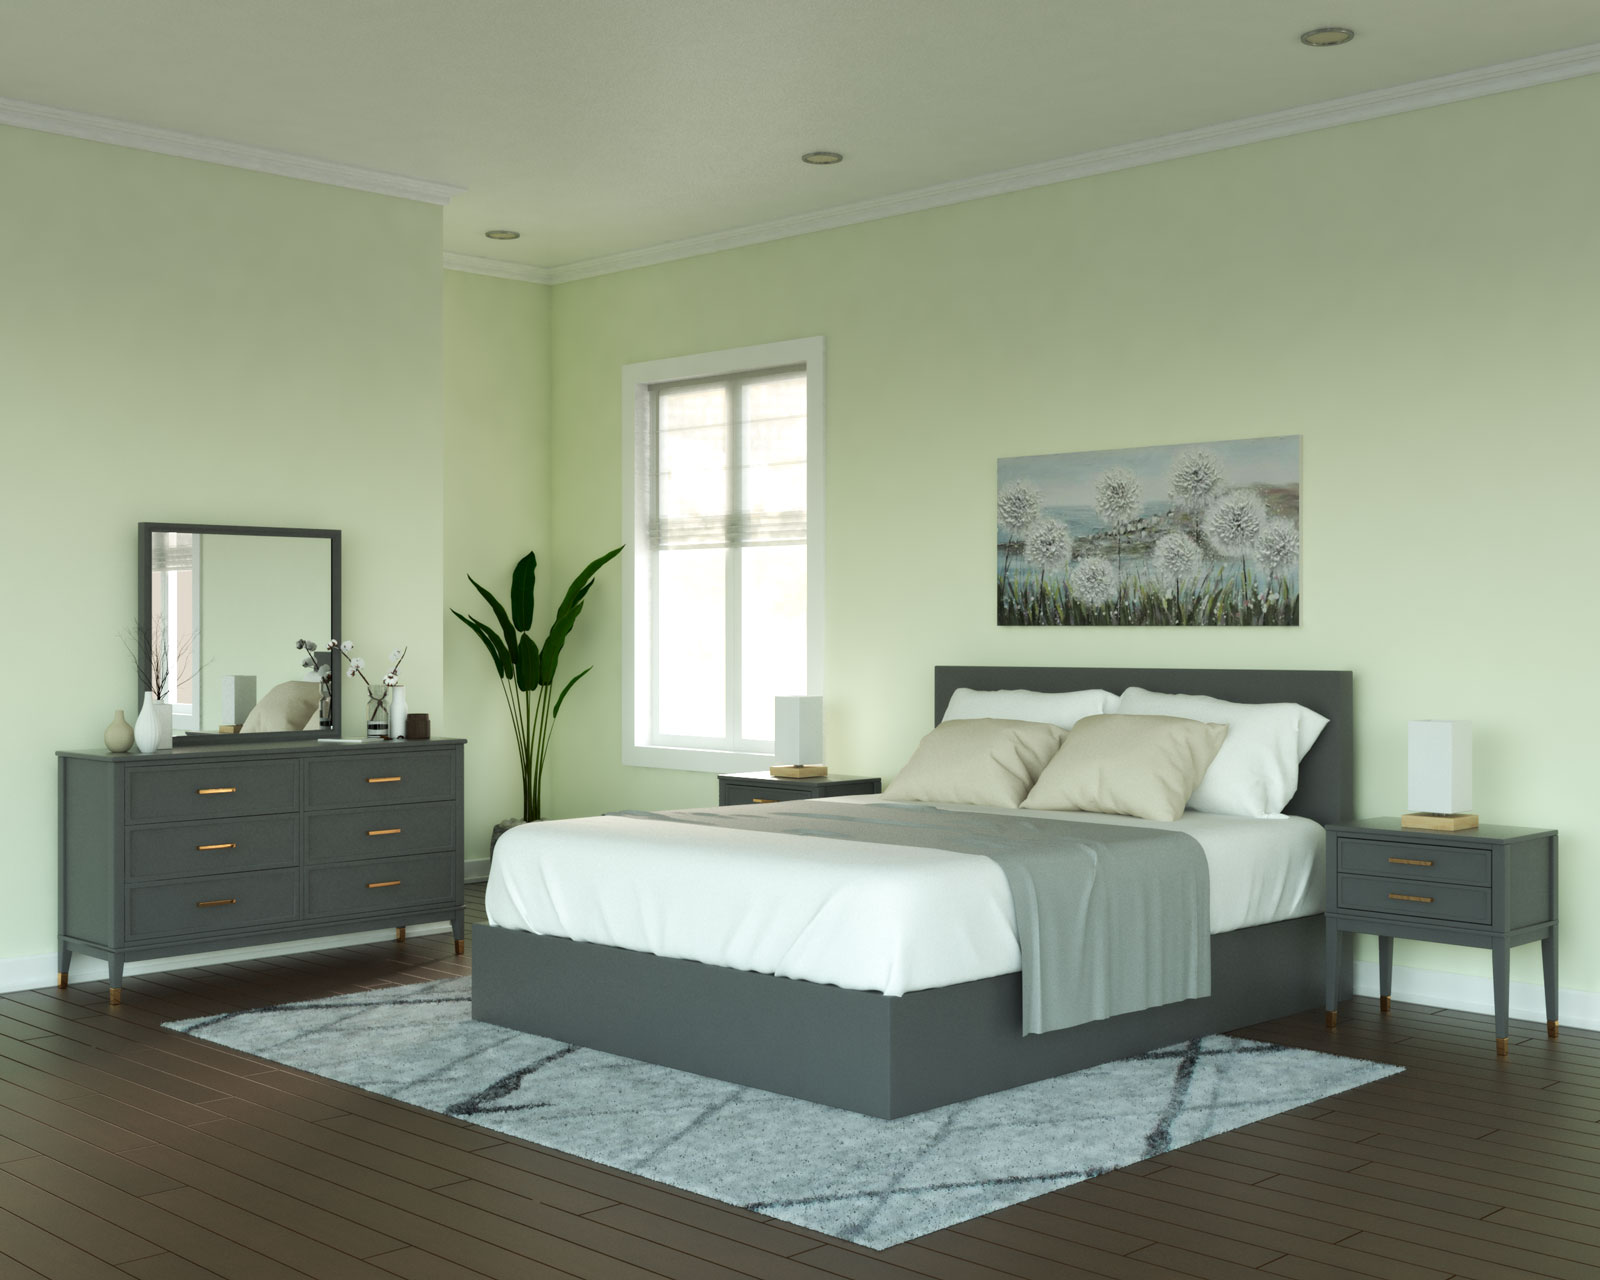 Lime and gray bedroom ideas